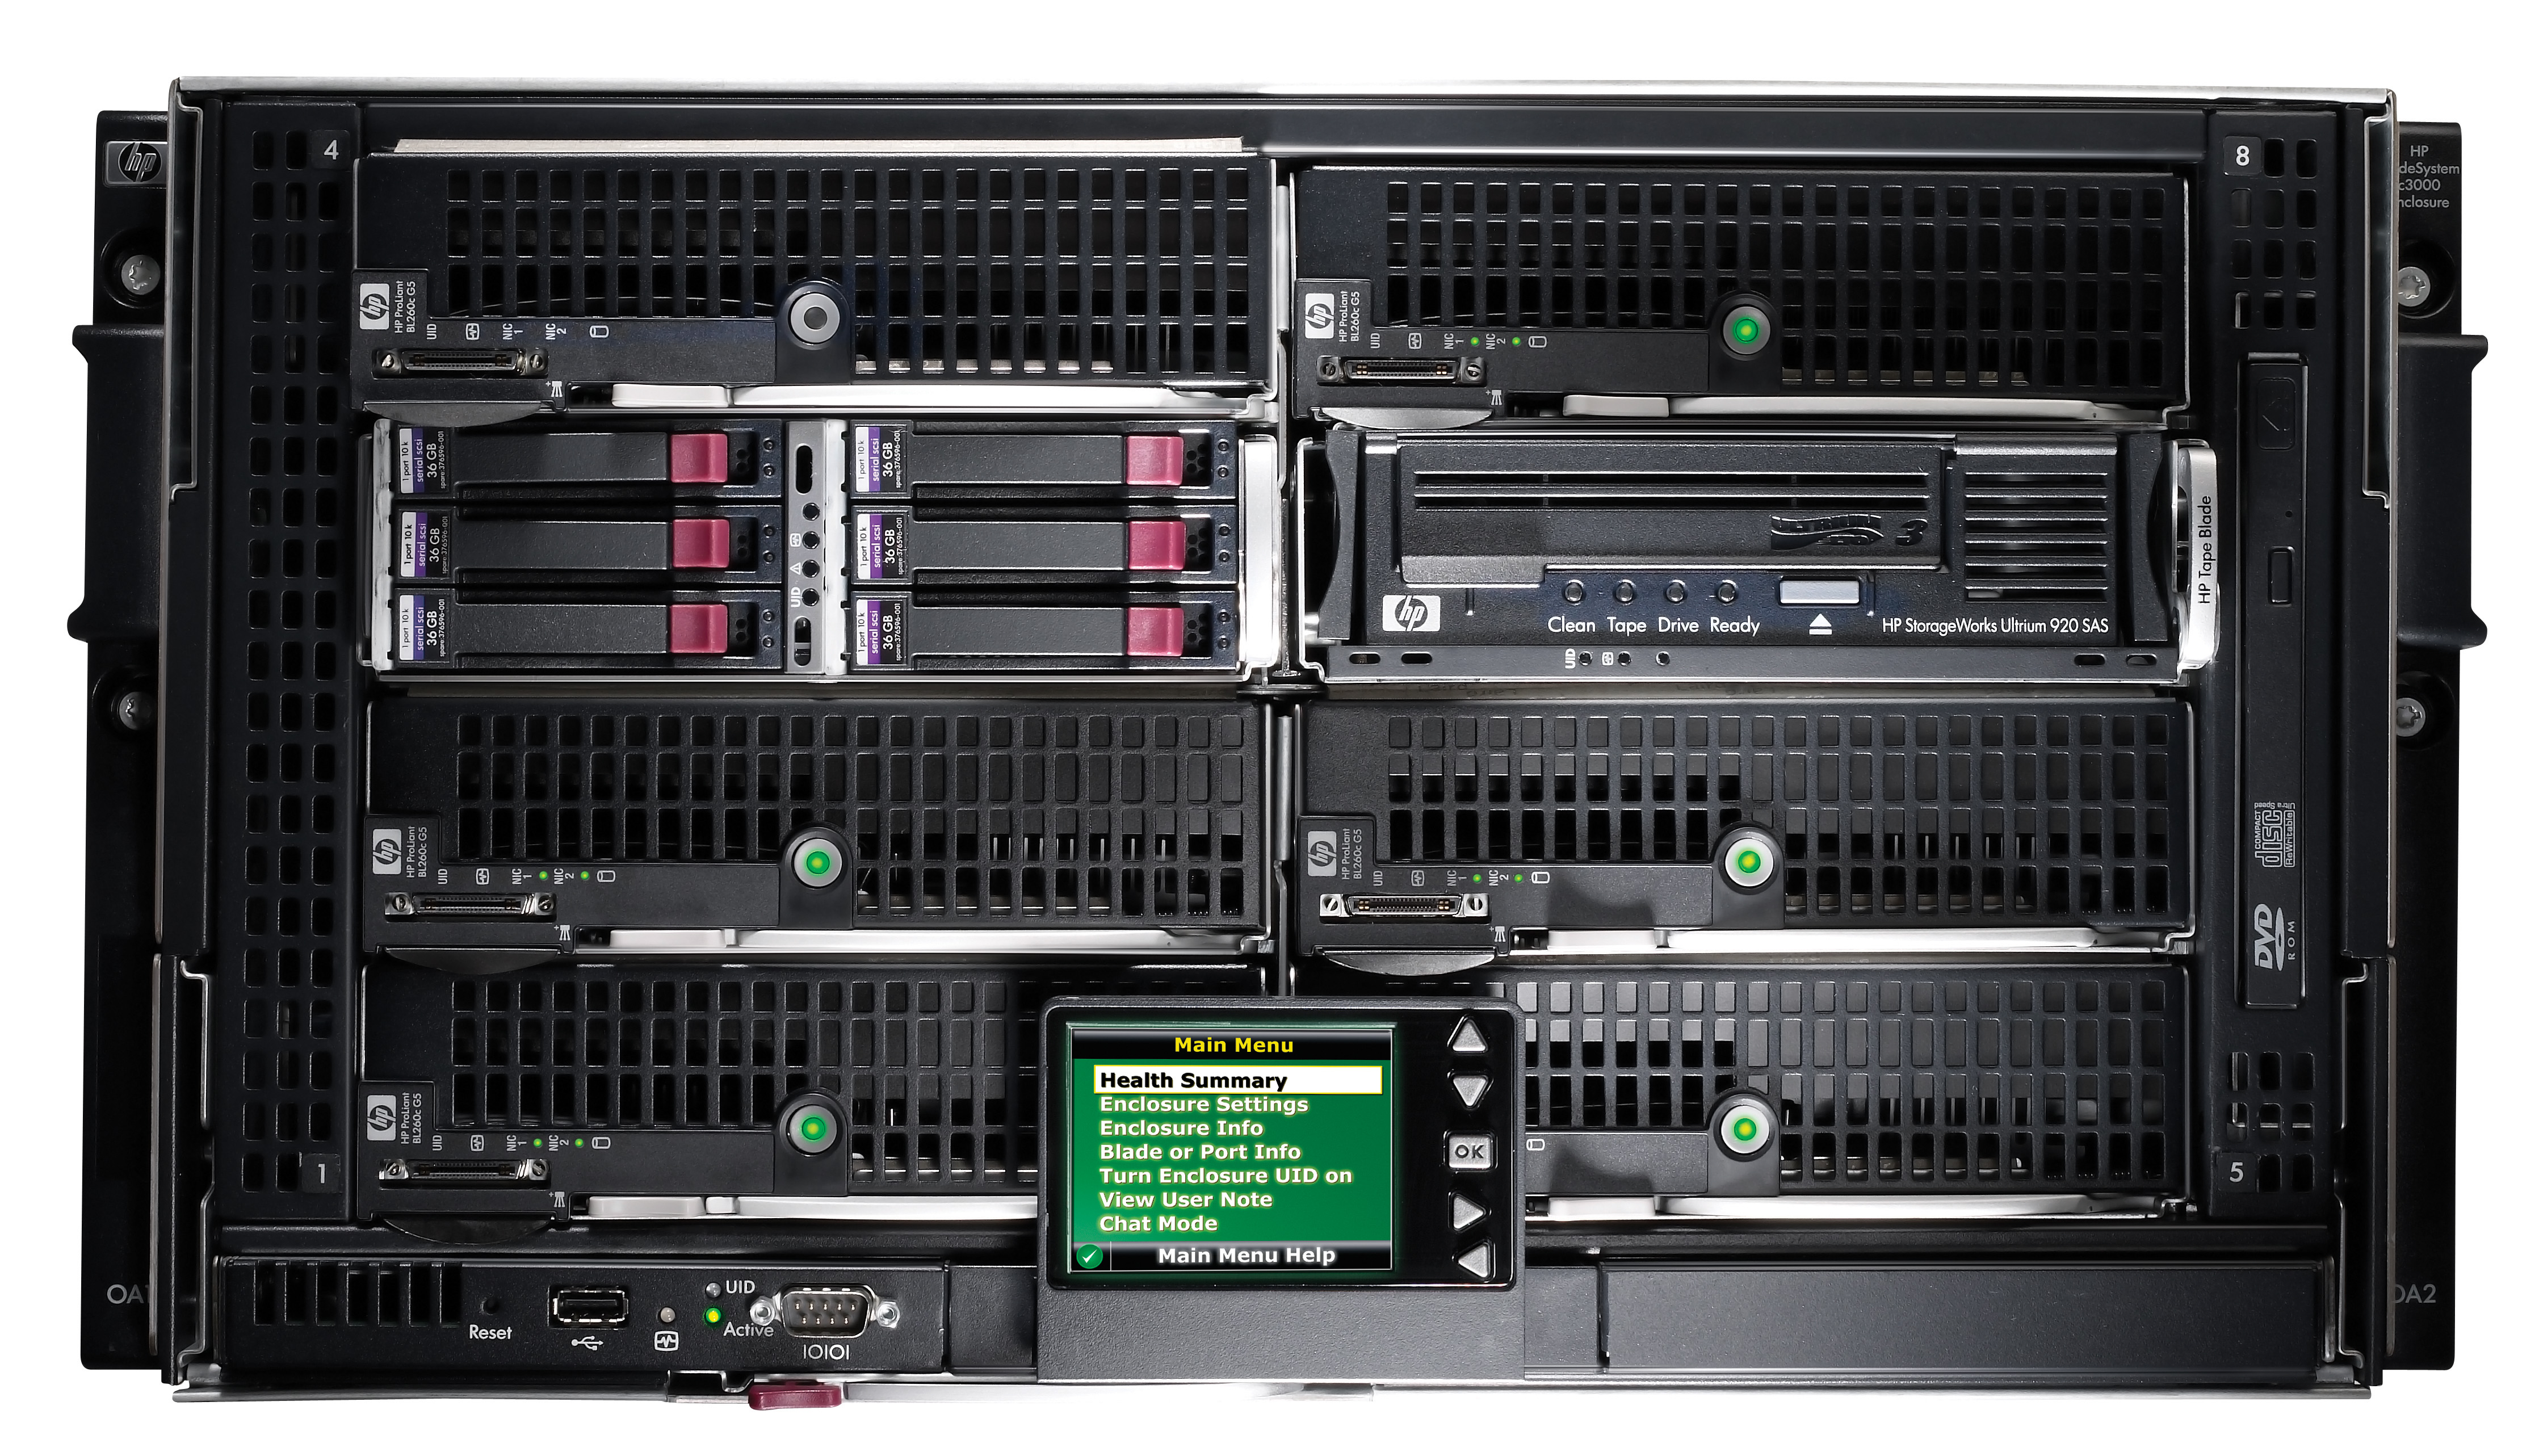 Blade шасси HP BladeSystem c3000 Enclosure - корпус Rackmount 6U, вид спереди